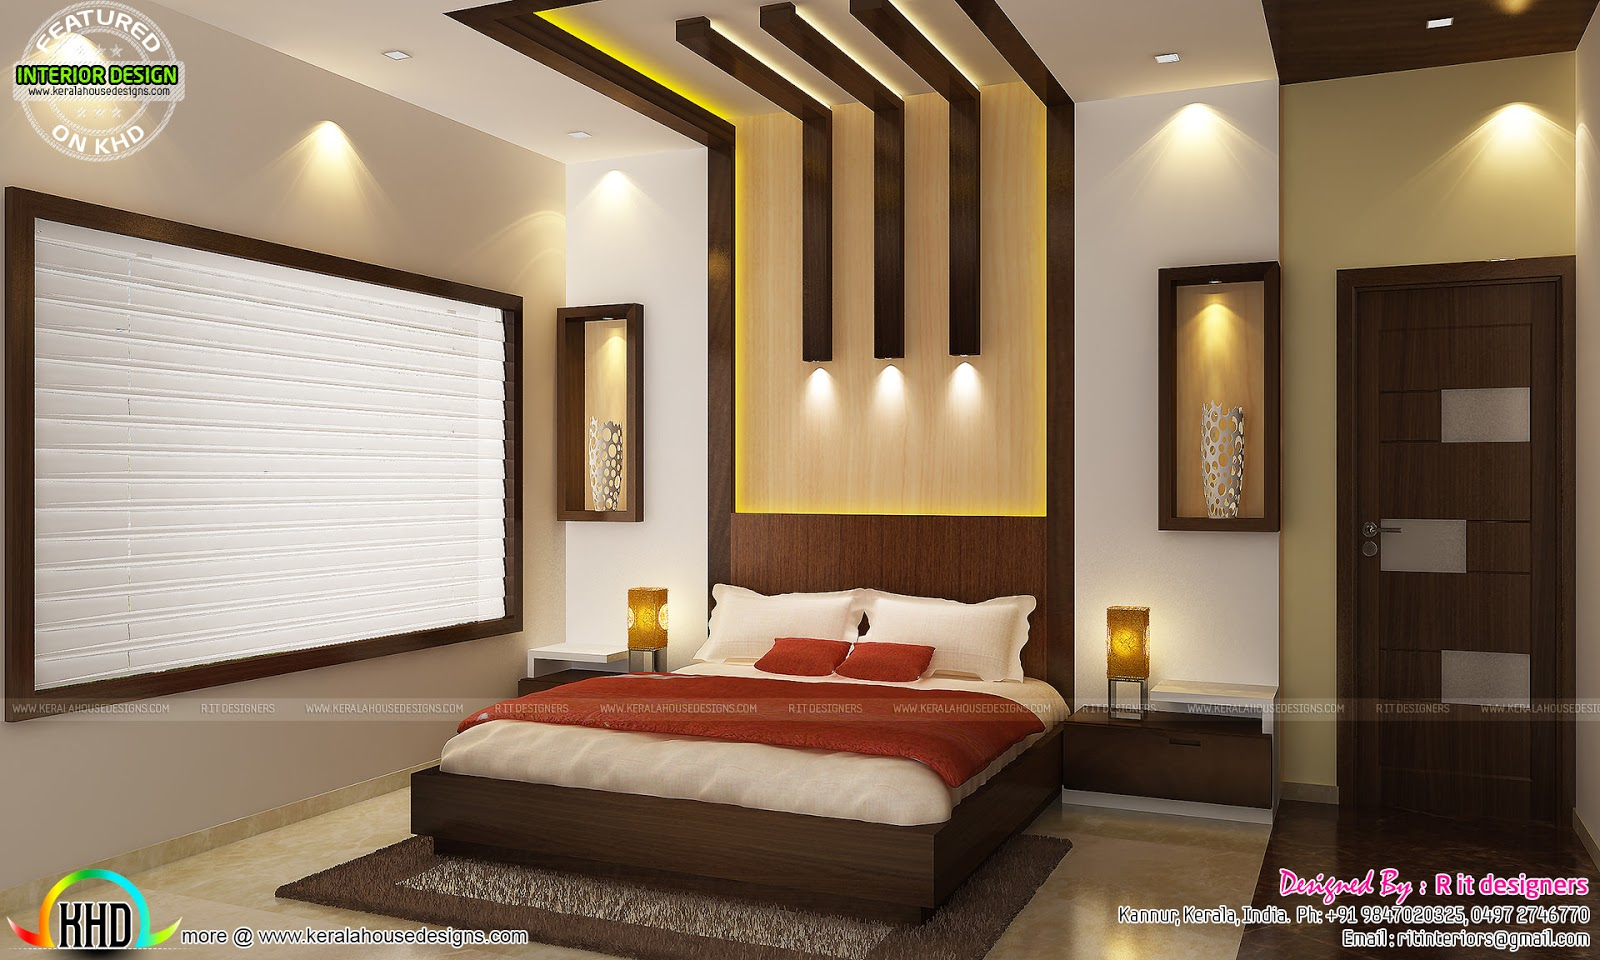 Kitchen living bedroom dining interior decor kerala for Home interior design room